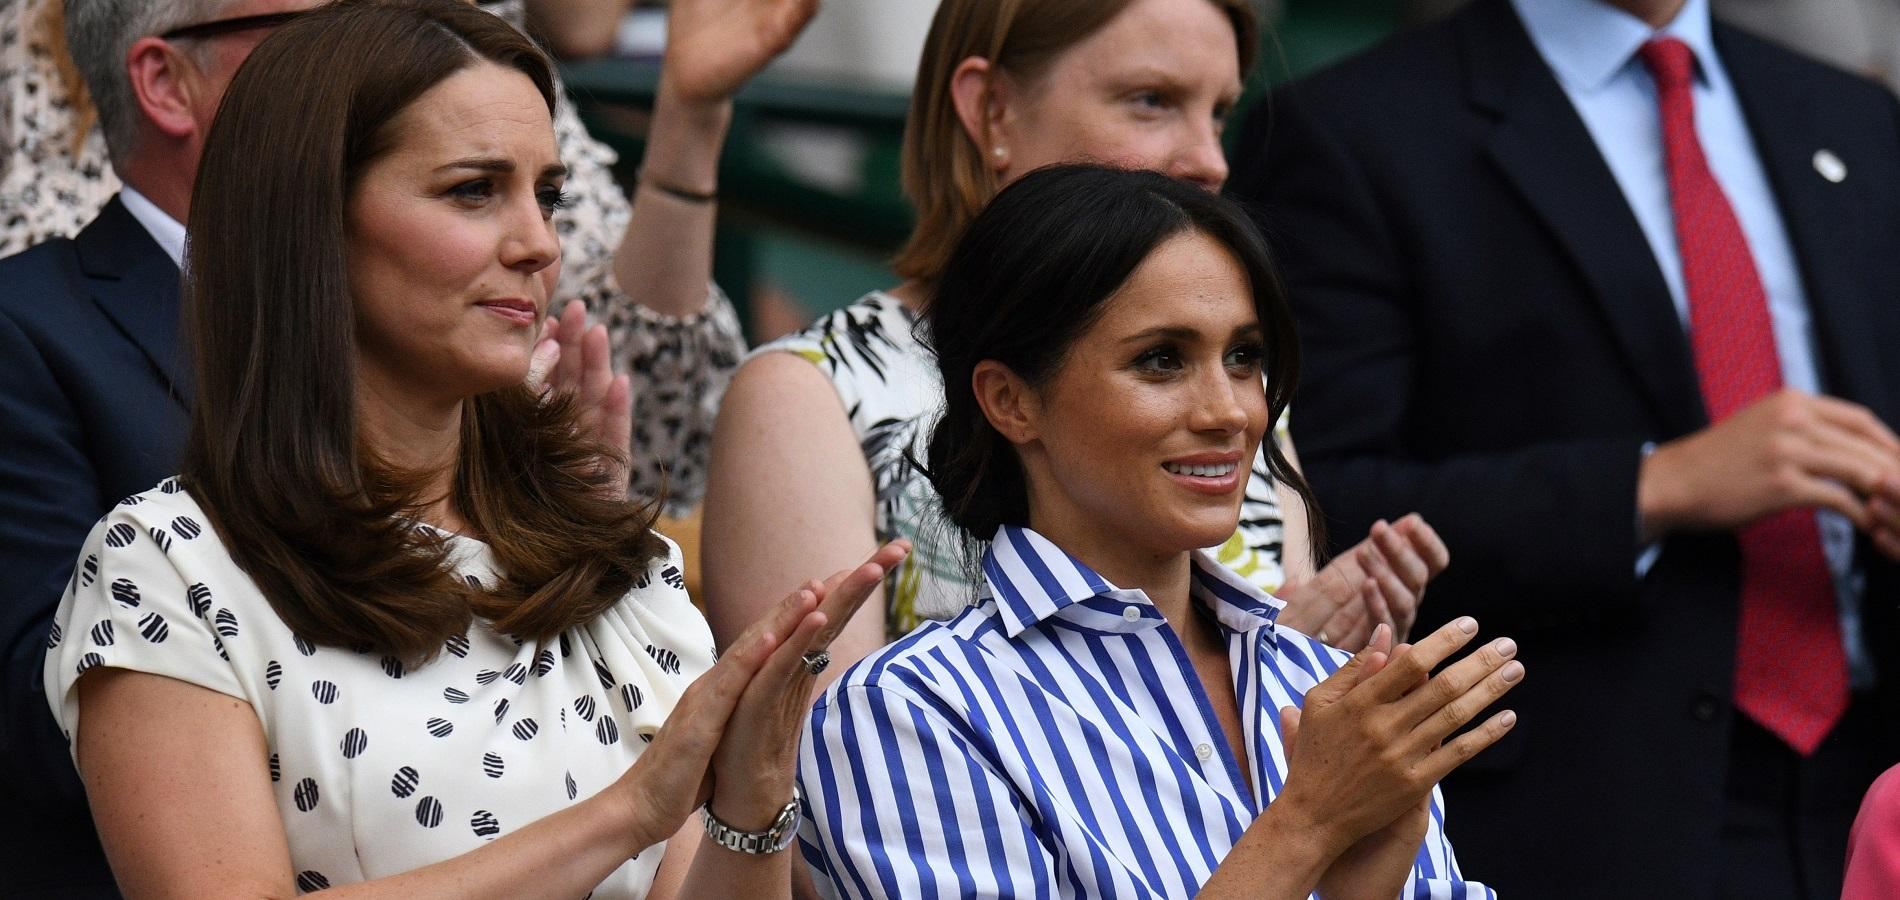 Qui de Kate Middleton ou de Meghan Markle a le plus d'influence dans la mode ?